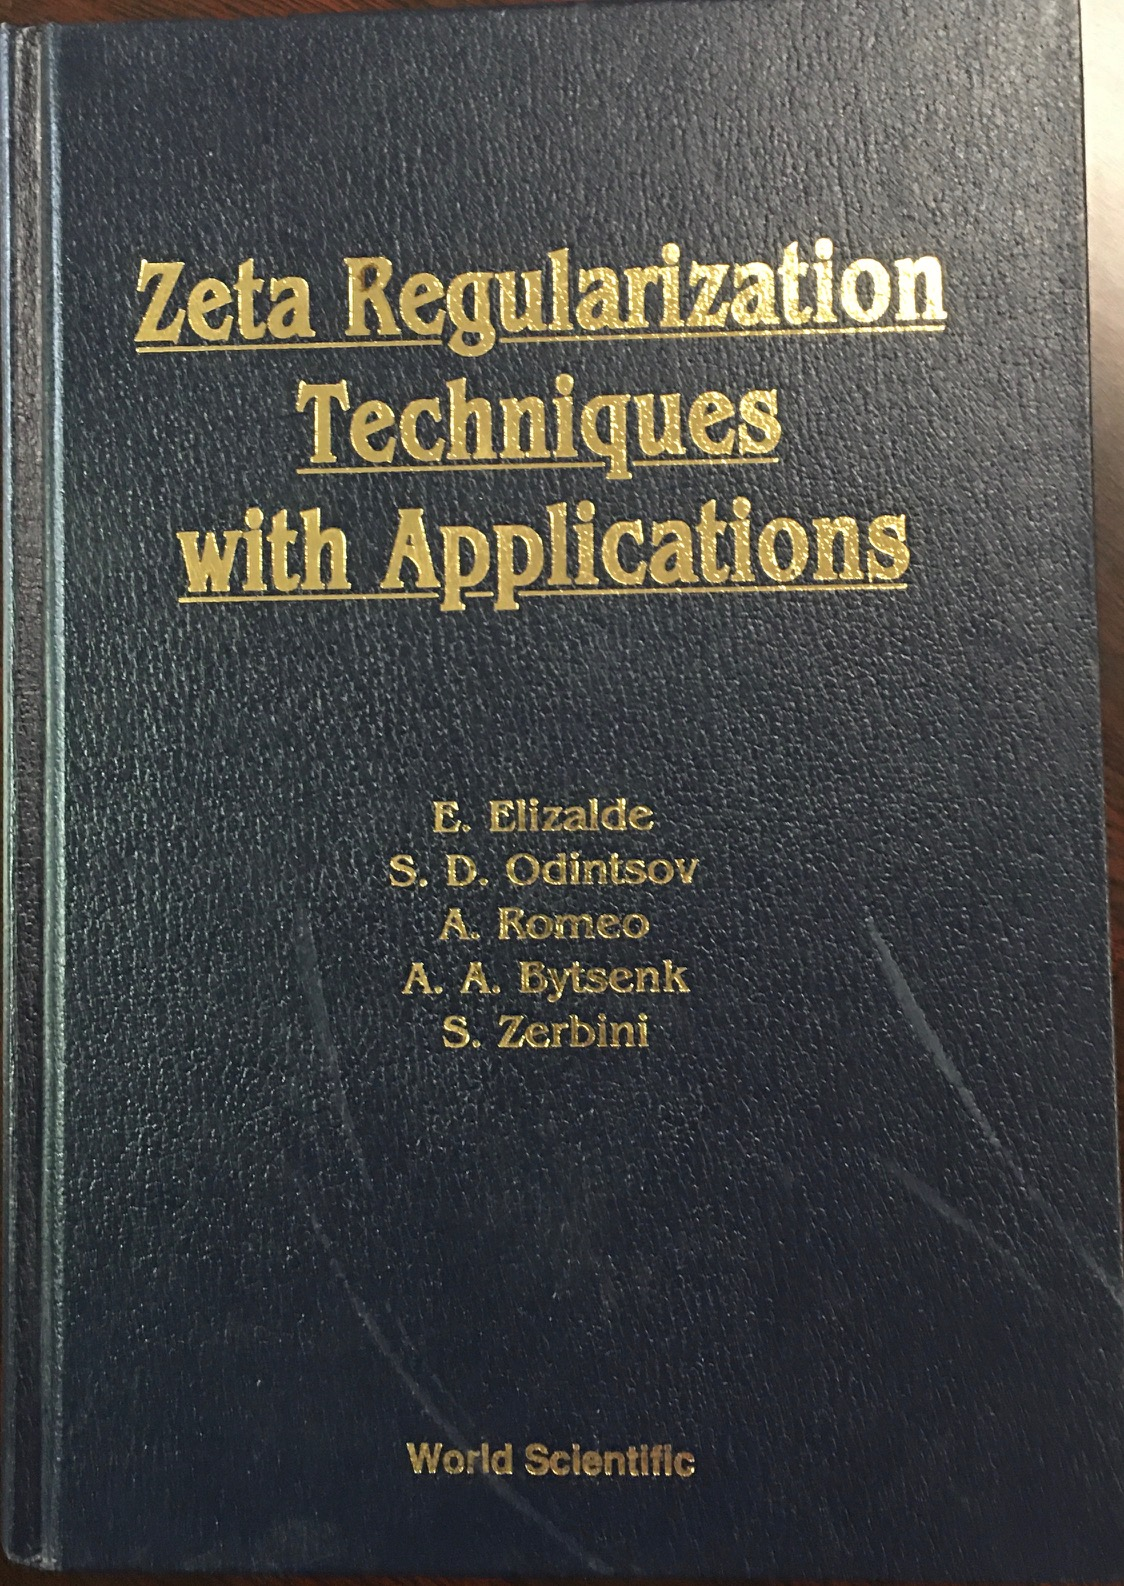 Image for Zeta Regularization Techniques with Applications